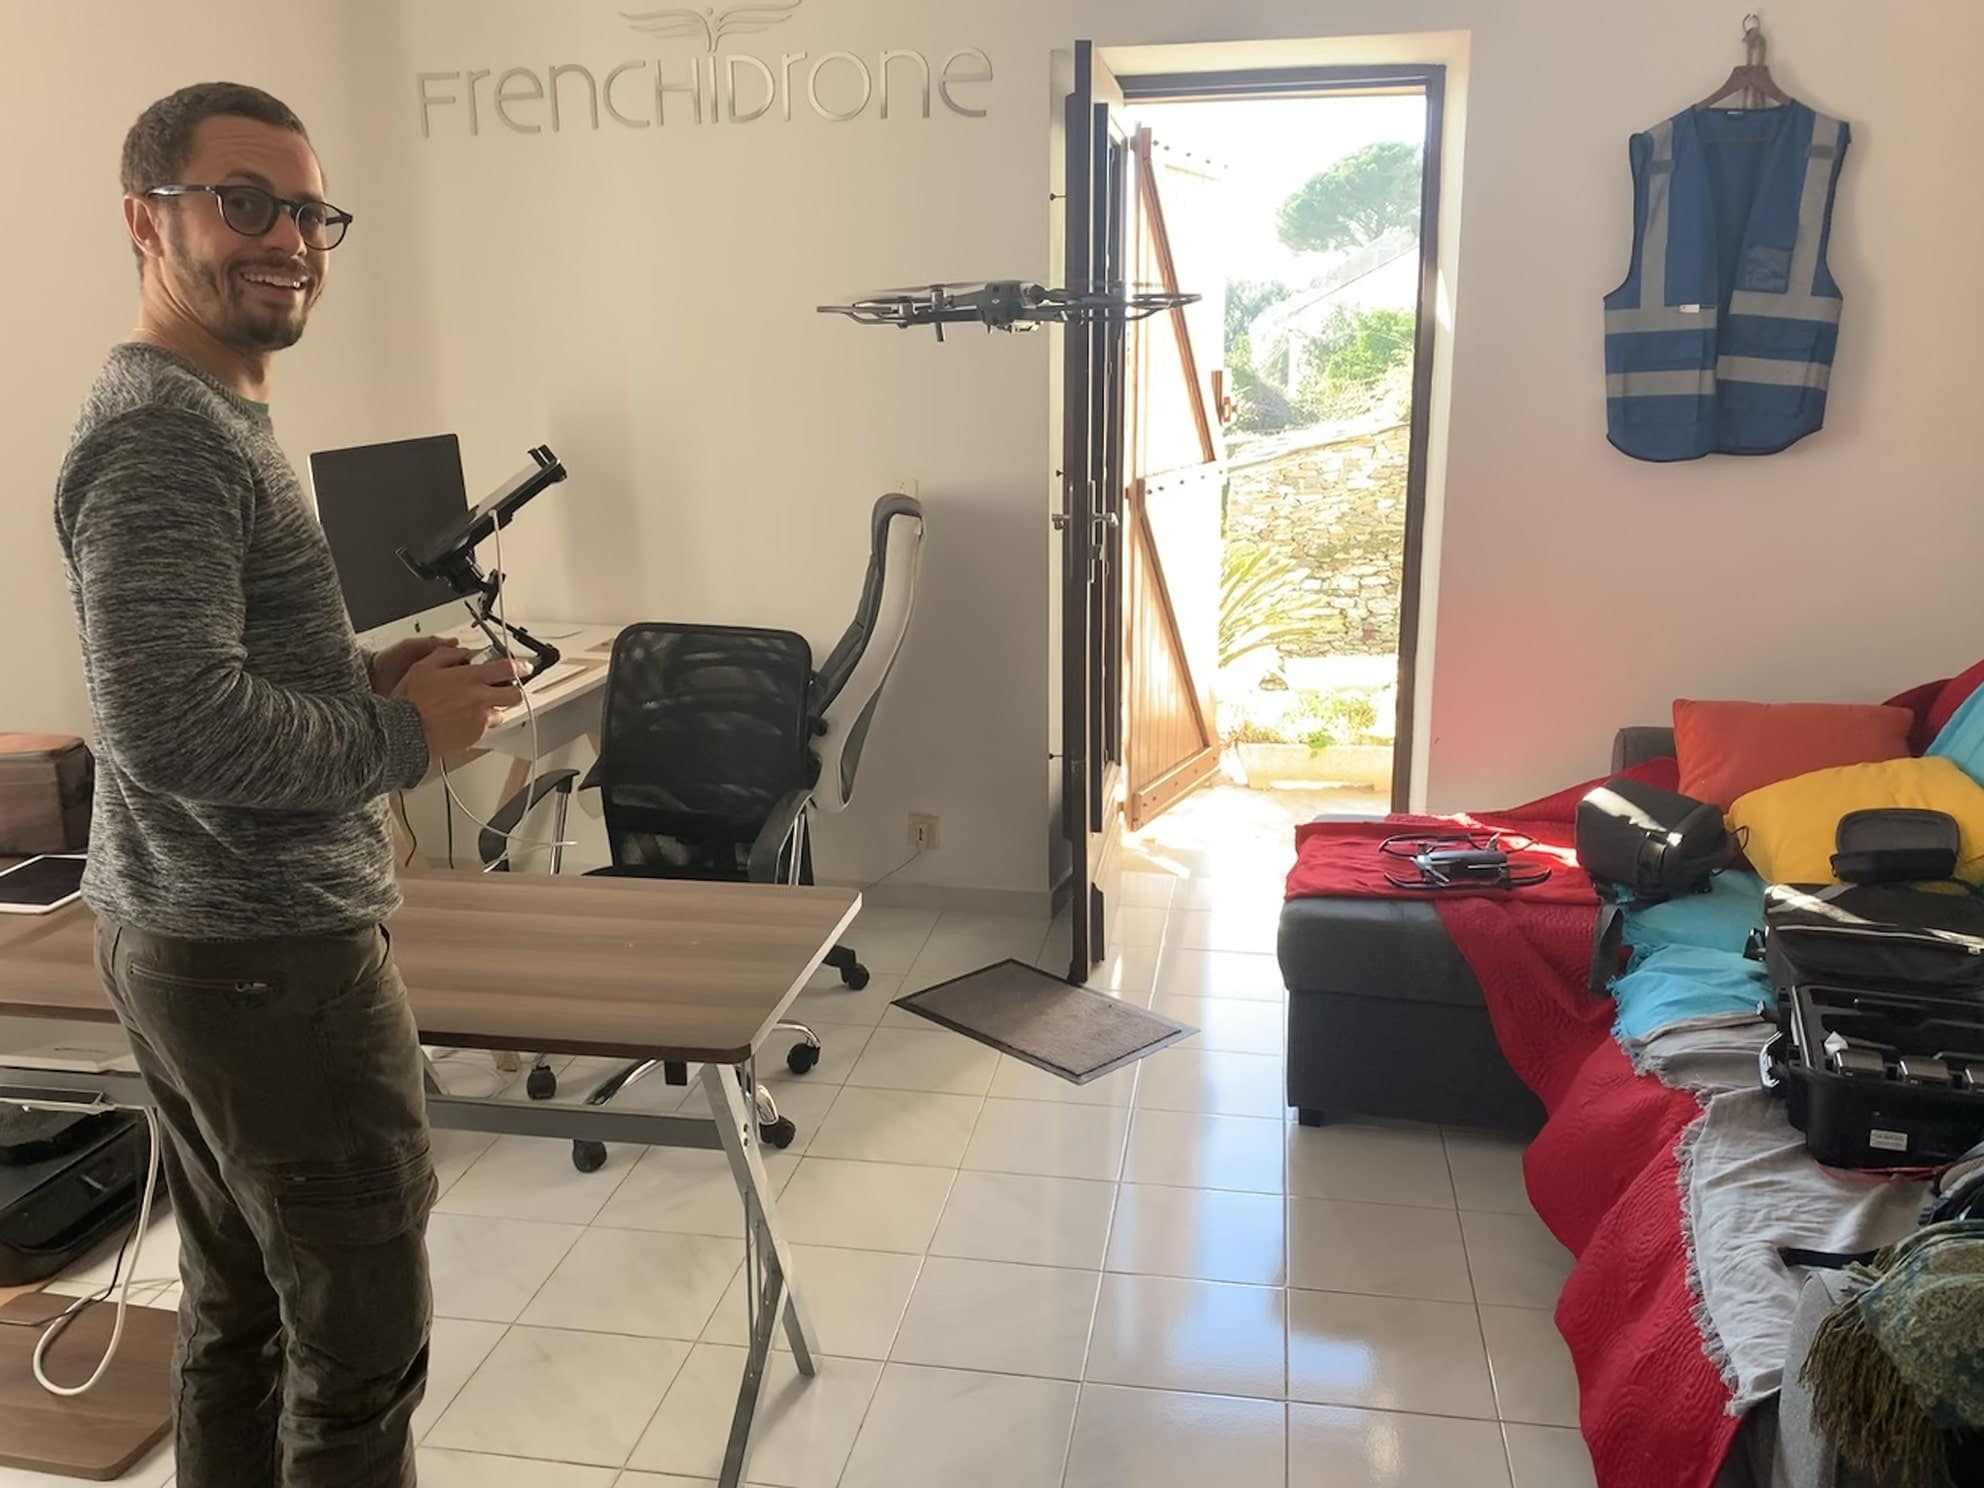 Formation-drone-Ambroise-2020-min